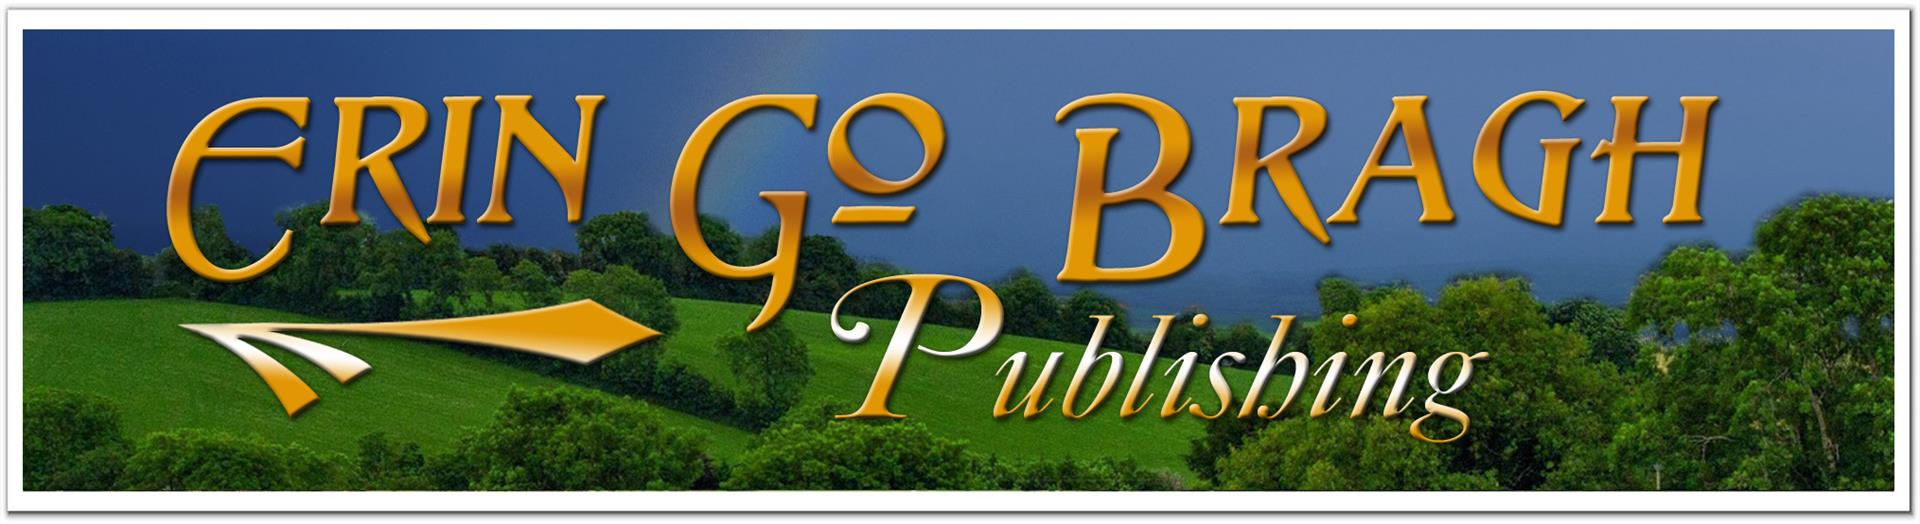 erin-go-braugh-publishing5